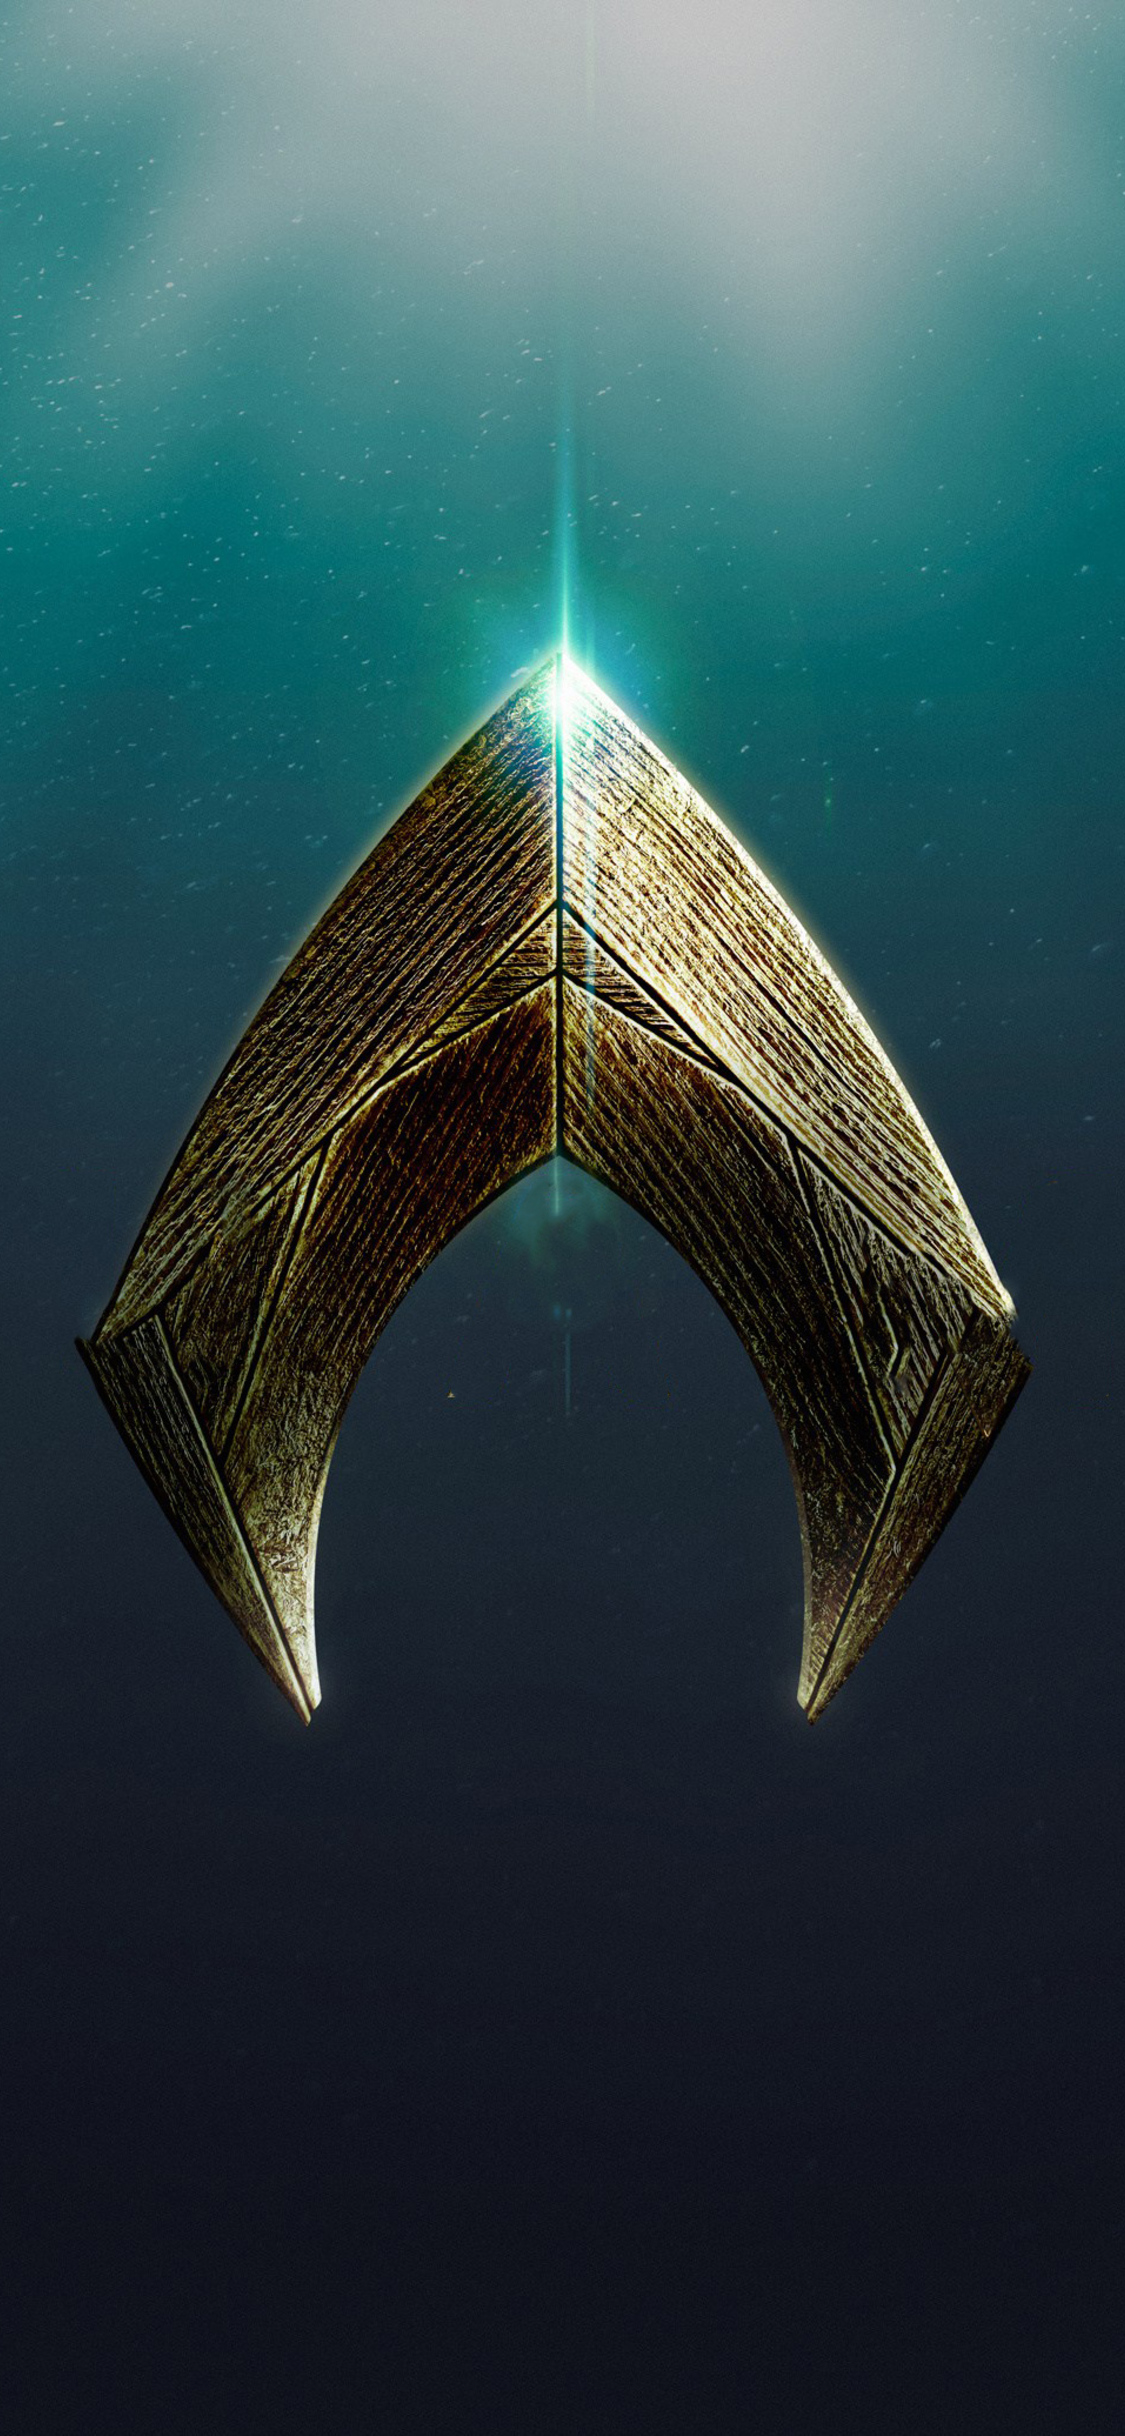 1125x2436 2018 Aquaman Movie Logo Iphone Xs Iphone 10 Iphone X Hd 4k